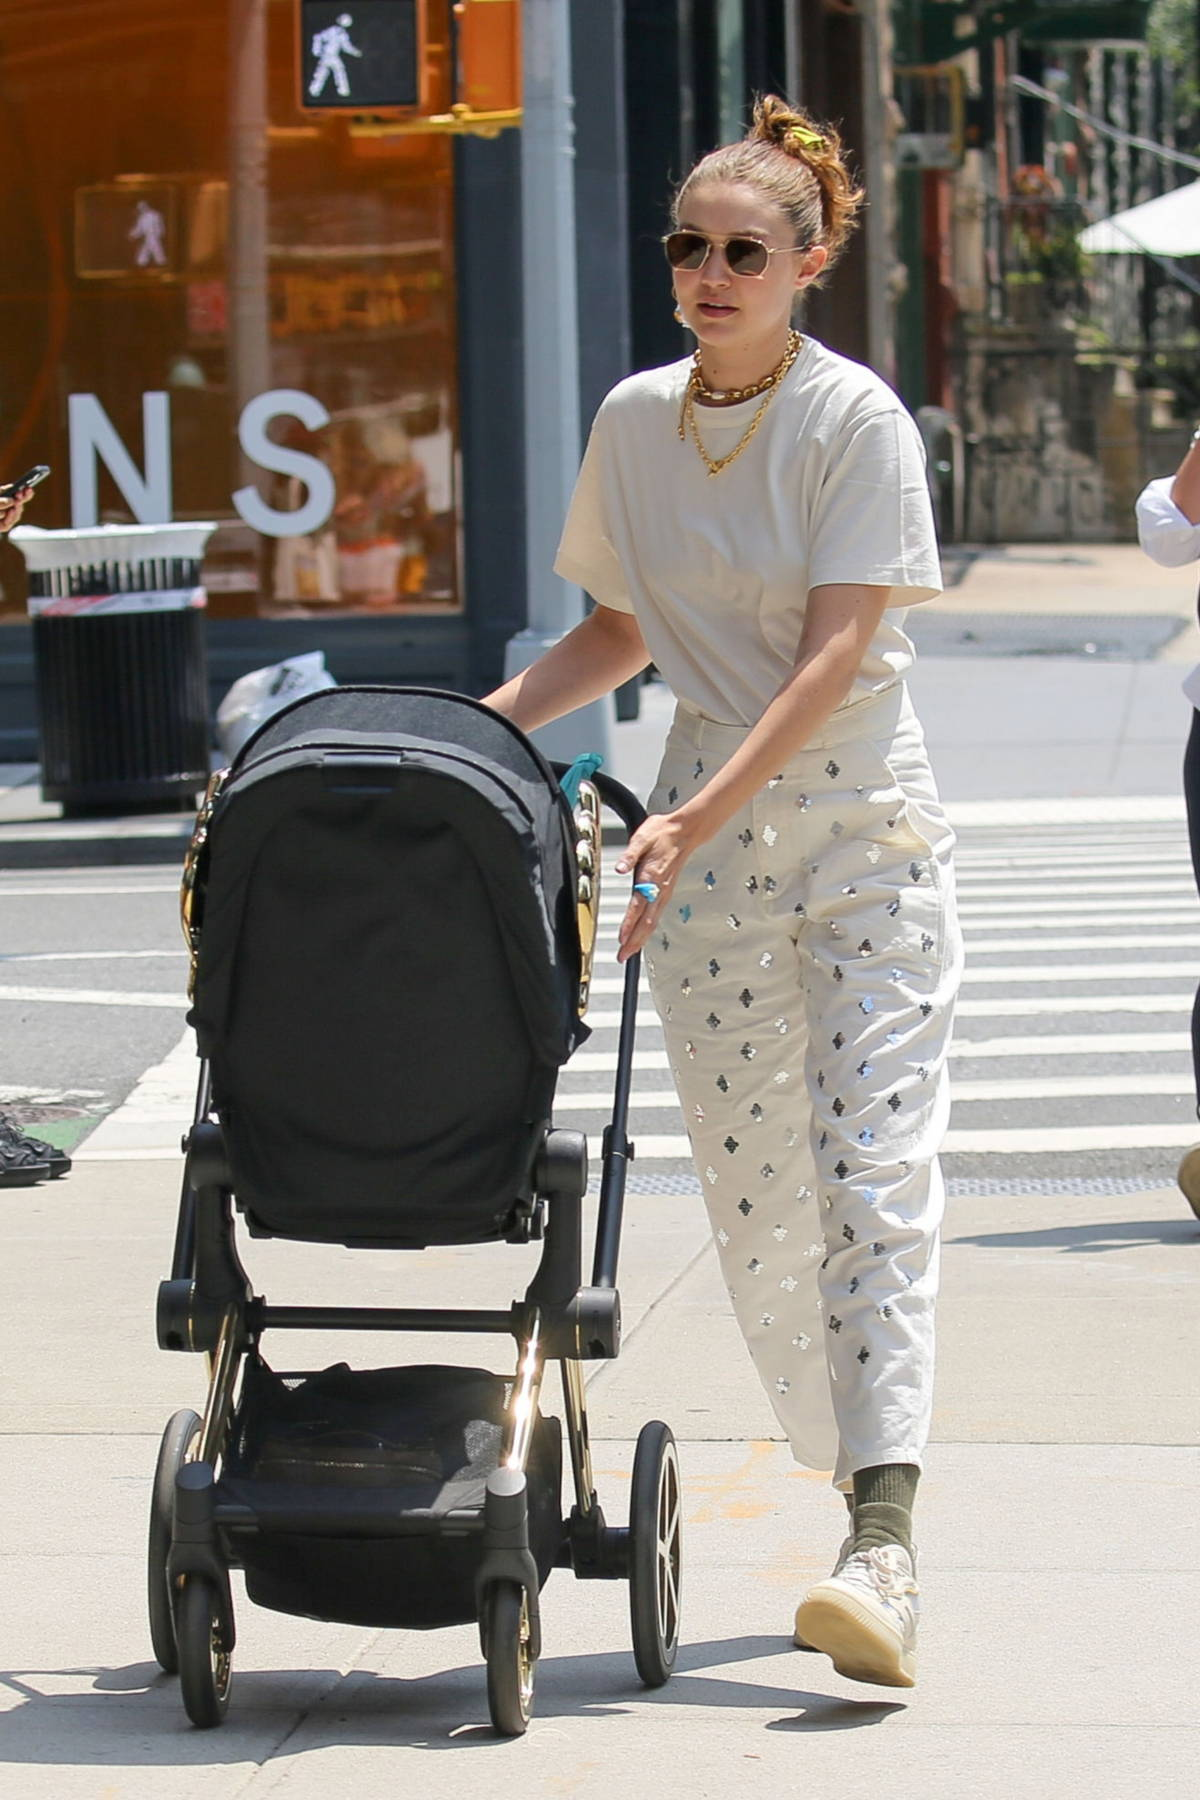 Gigi Hadid keeps it casual yet trendy as she steps out for stroll with her baby daughter in New York City